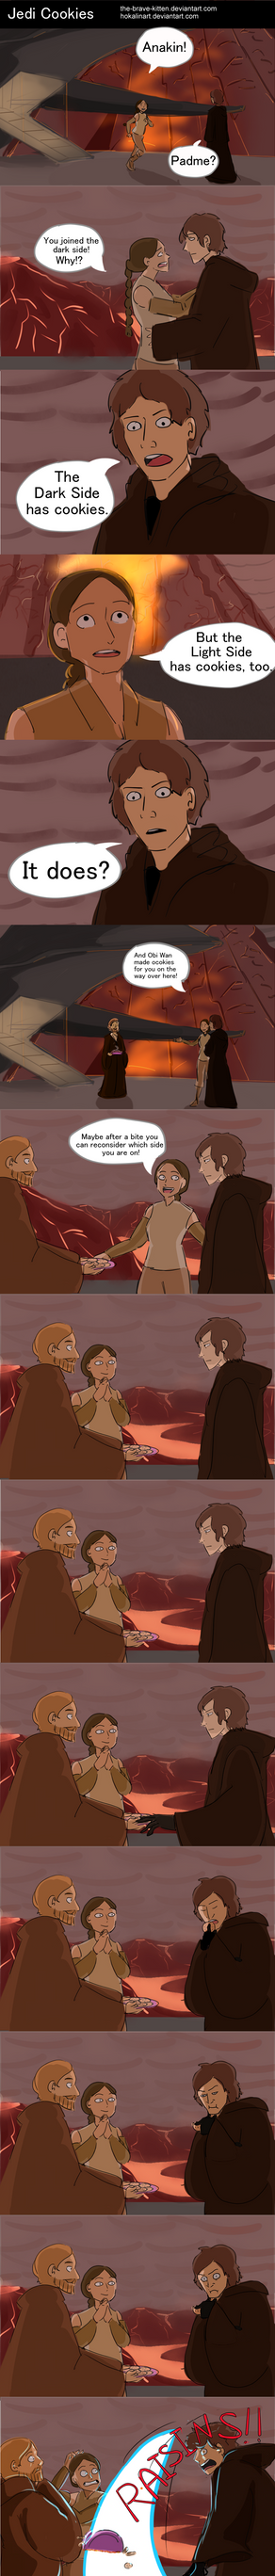 Seven Days of Star Wars: Day 7 - Jedi Cookies by The-Brave-Kitten